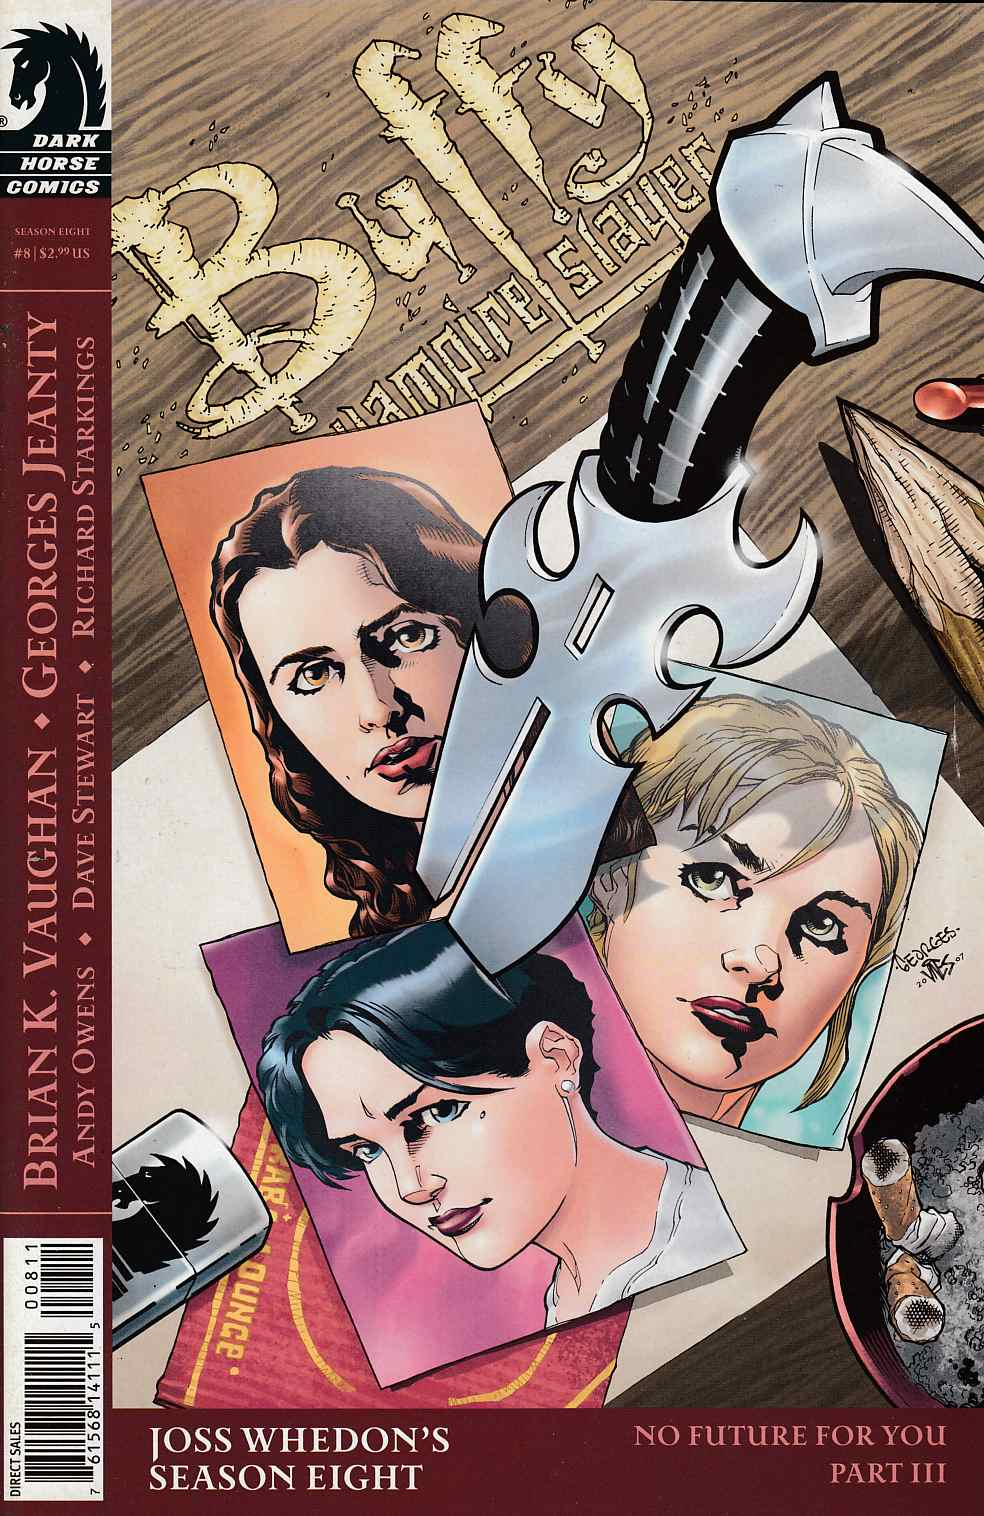 Buffy the Vampire Slayer Season 8 #8 Cover B Near Mint (9.4) [Dark Horse Comic] THUMBNAIL